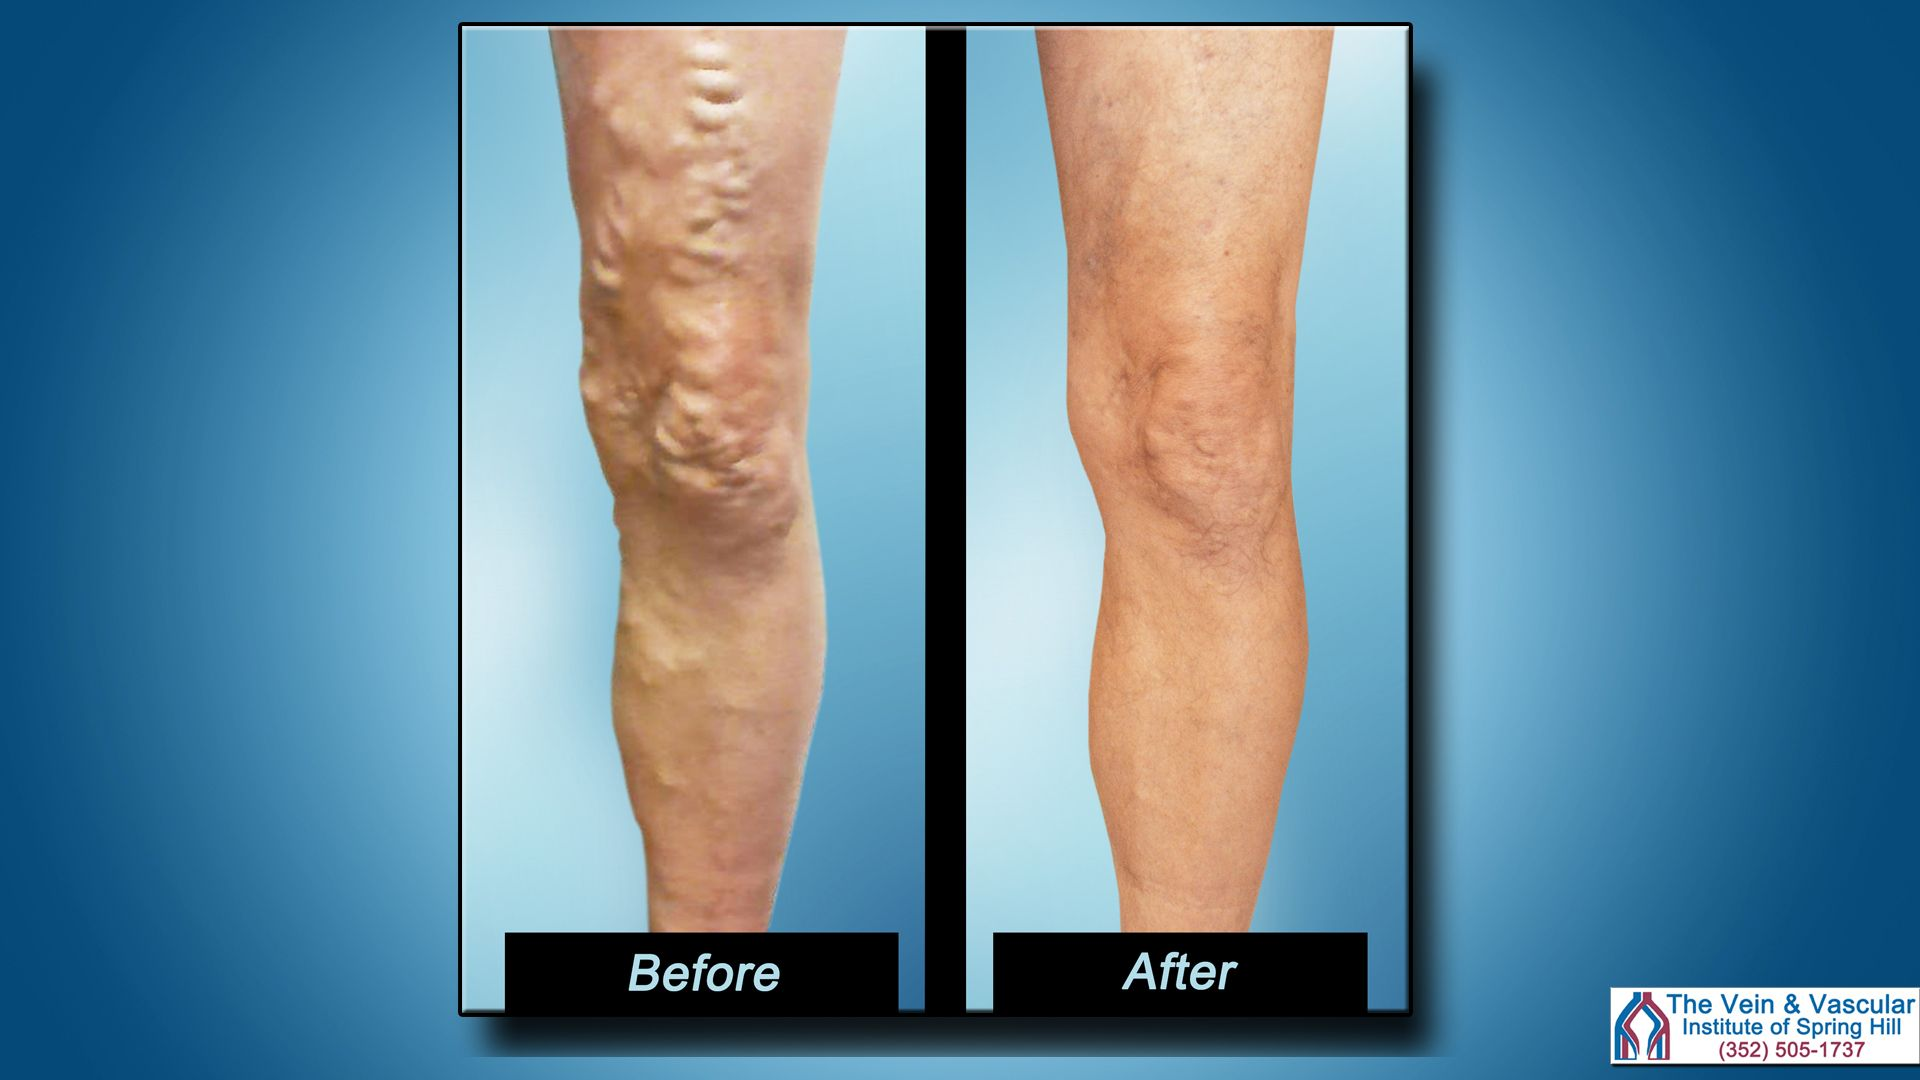 Pin By The Vein And Vascular Institute Of Spring Hill On Vein And Vascular Institute Of Spring Hill Updates Varicose Veins Treatment Varicose Vein Removal Varicose Veins